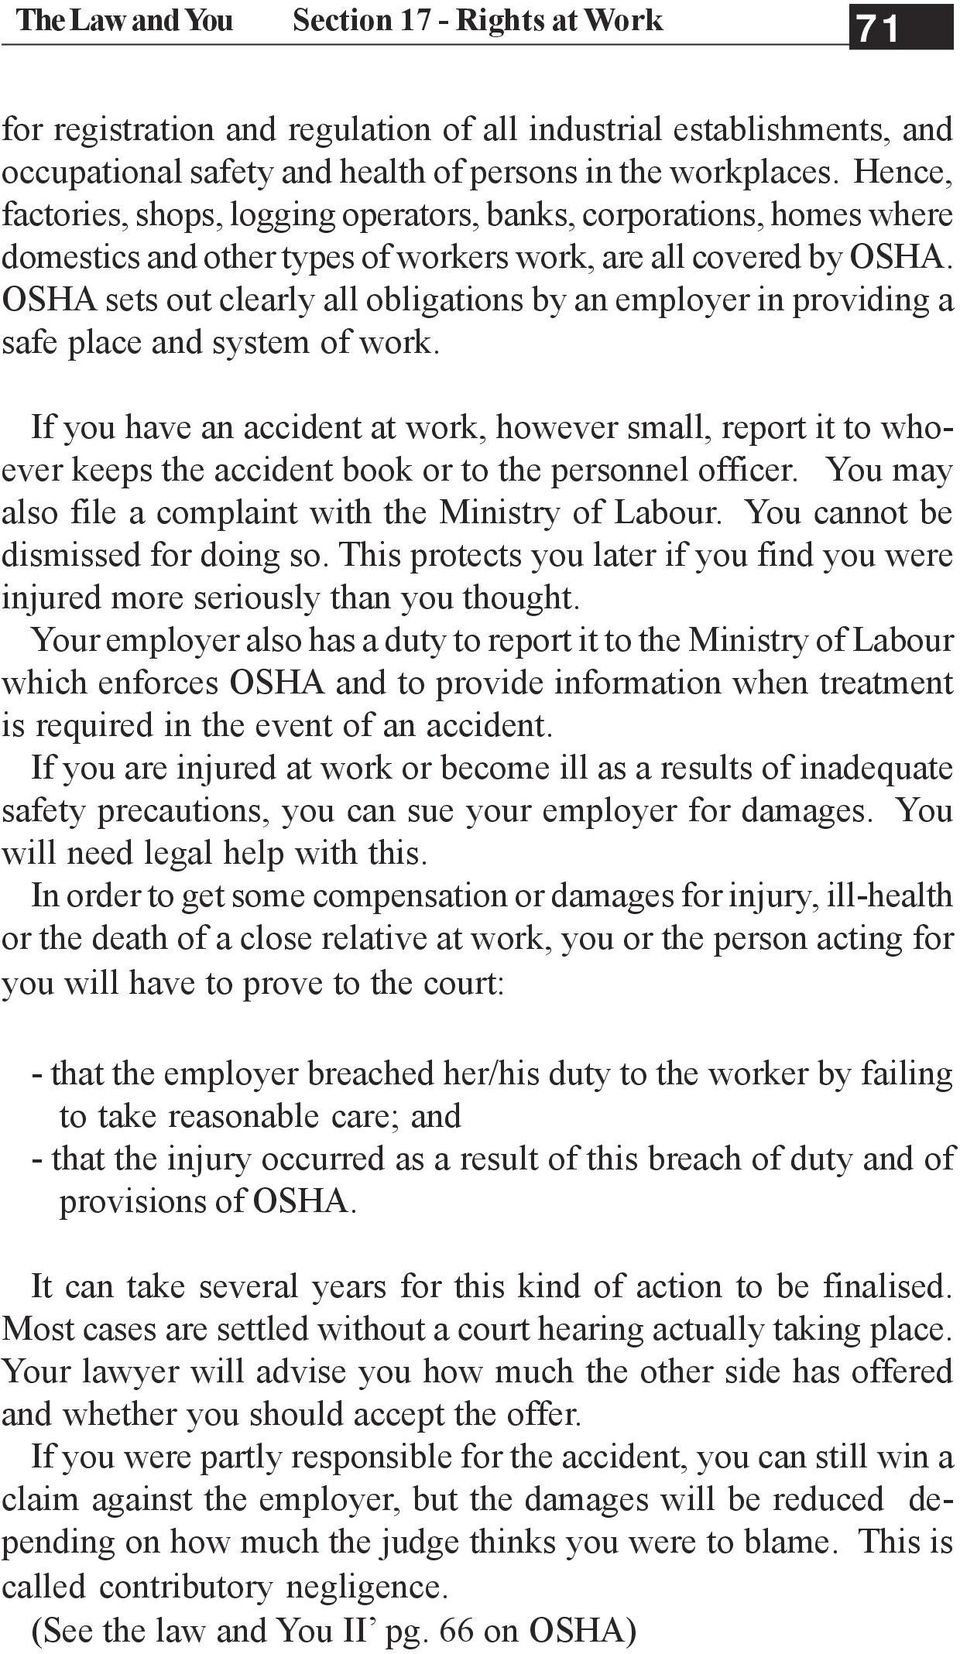 OSHA sets out clearly all obligations by an employer in providing a safe place and system of work.